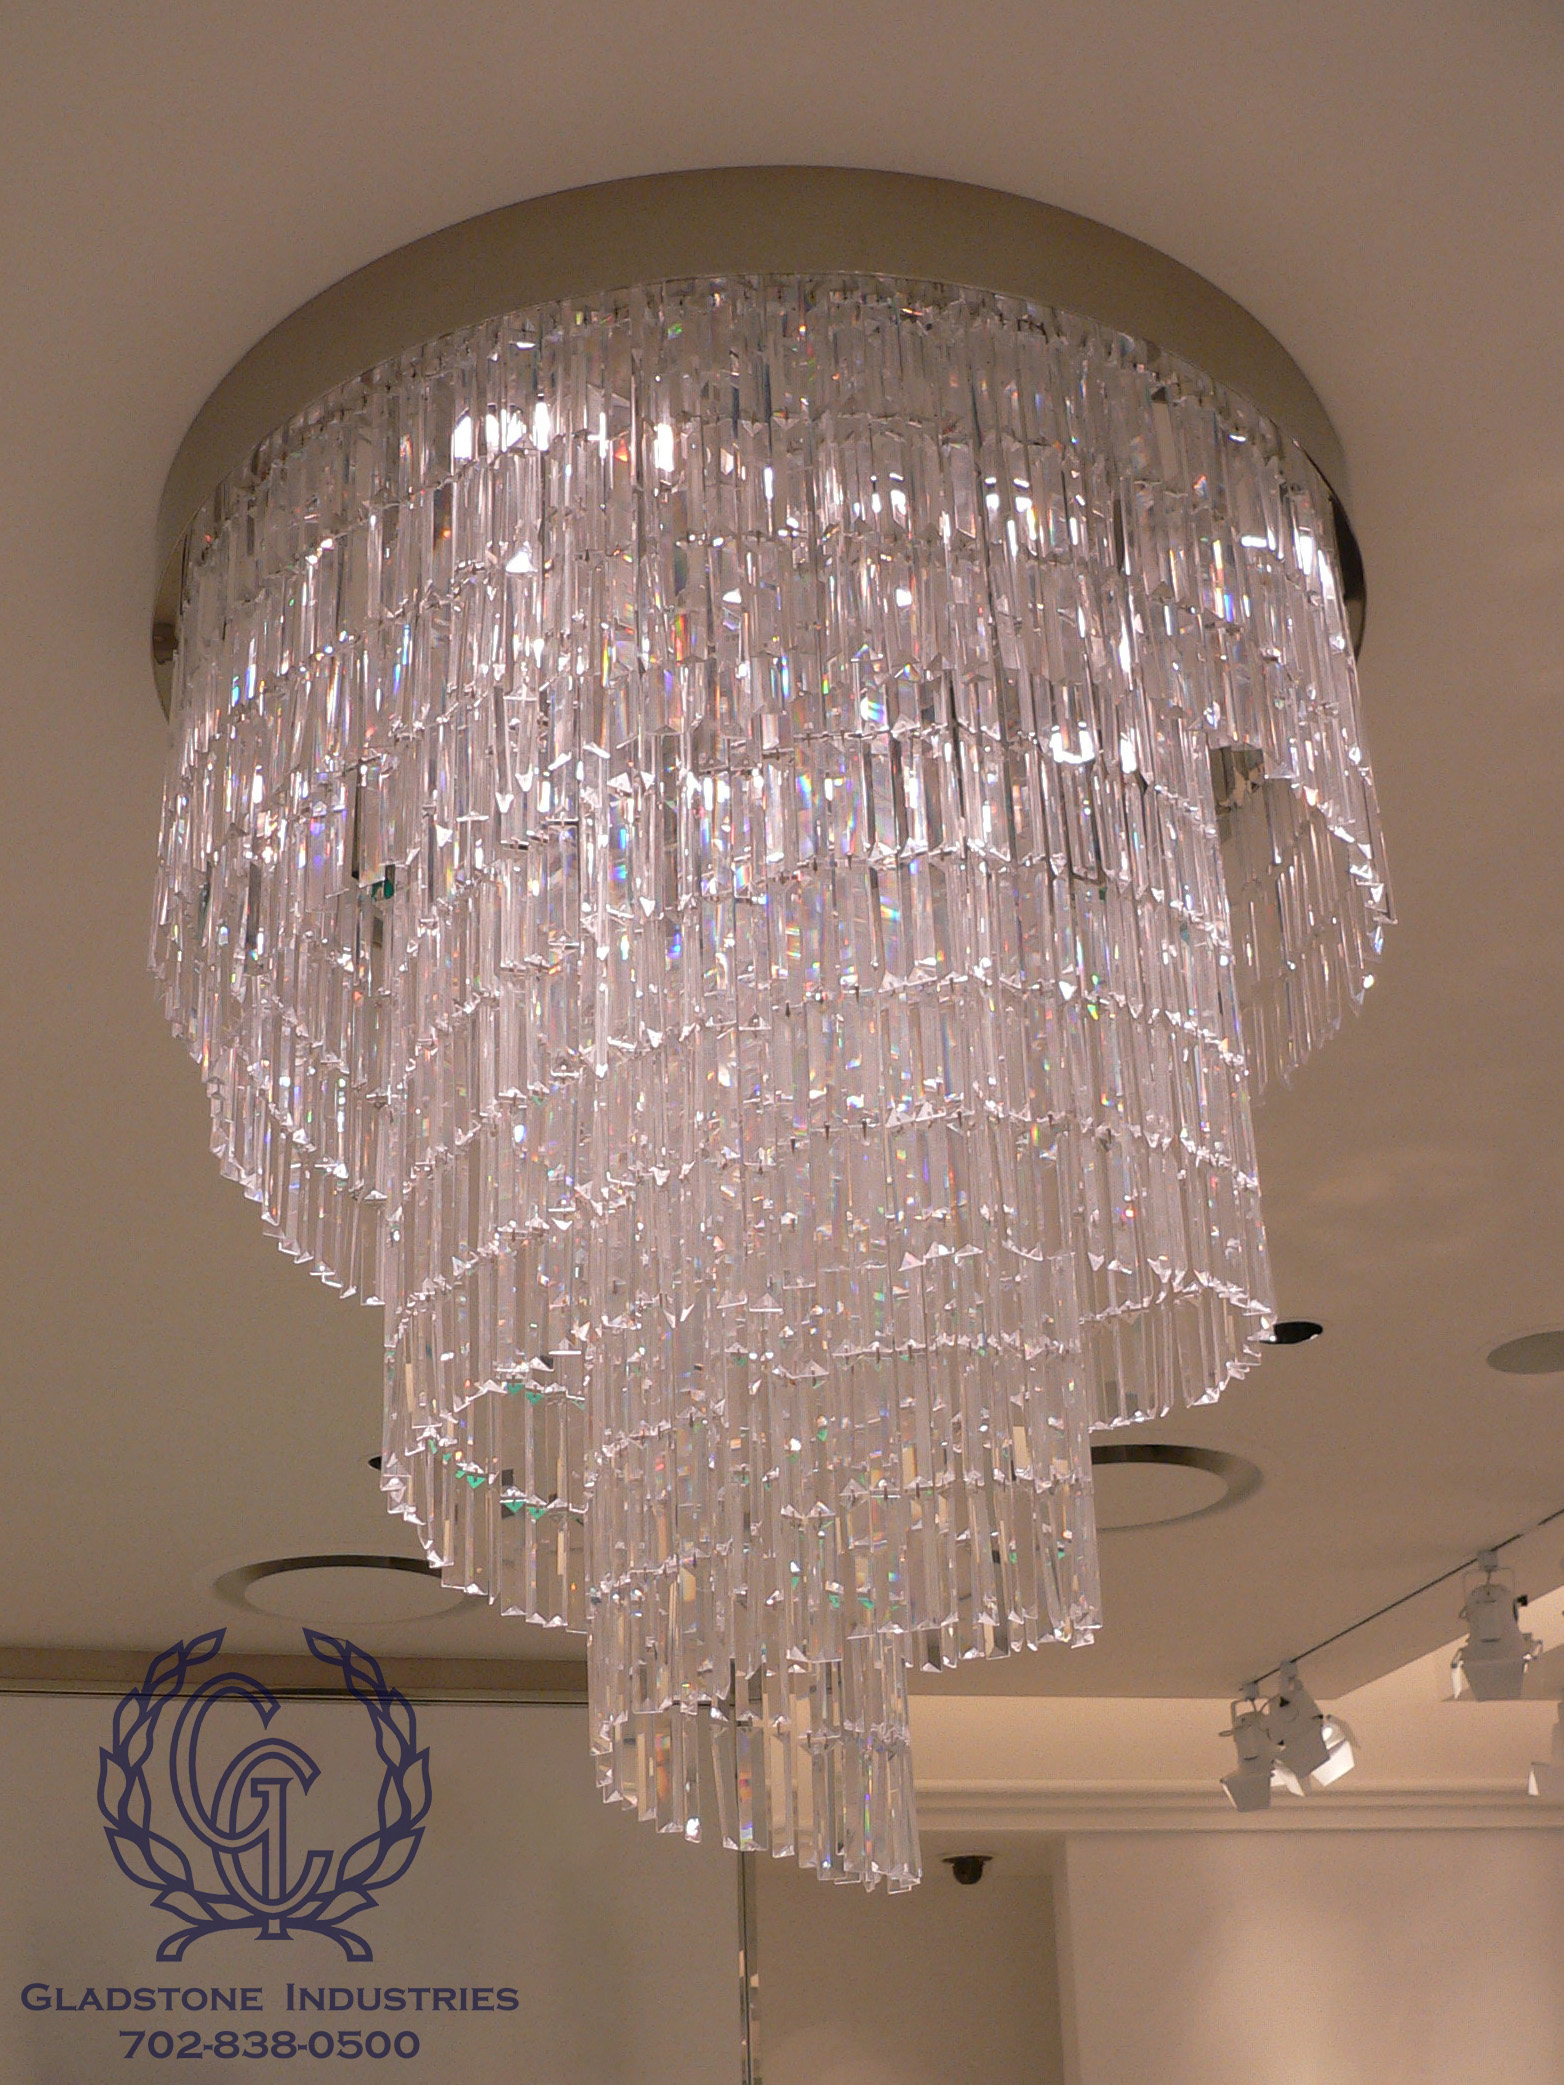 Custom Chandeliers and Pendants Gladstone Industries Corporation